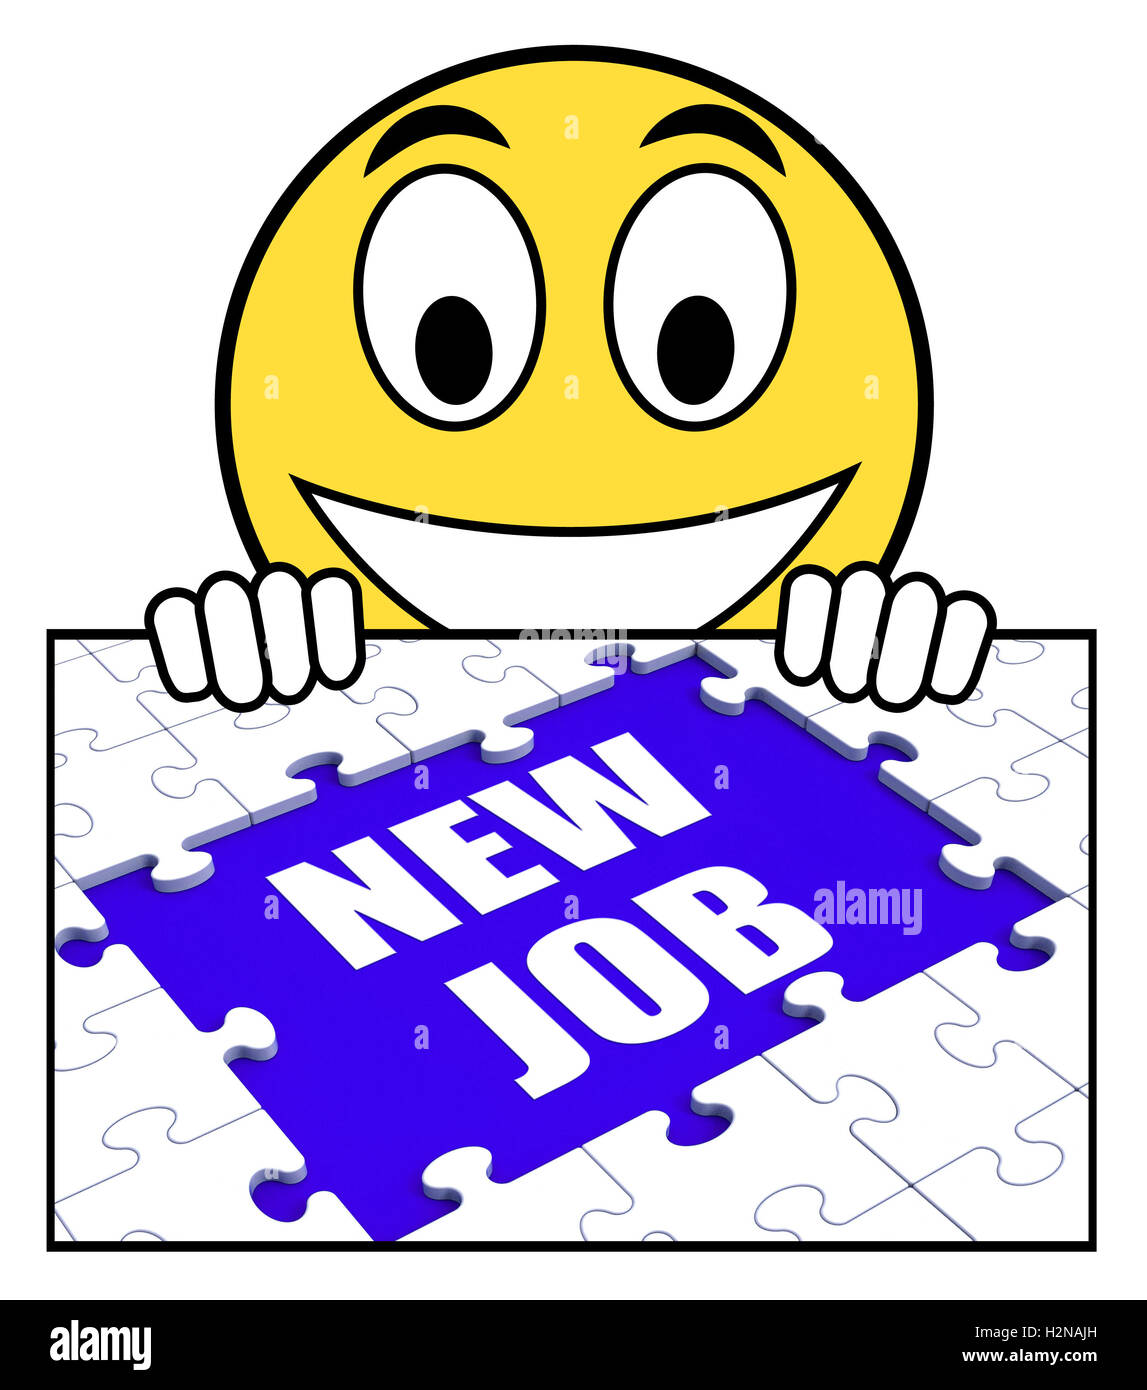 New Job Sign Meaning Different Workplace Or Occupation Stock